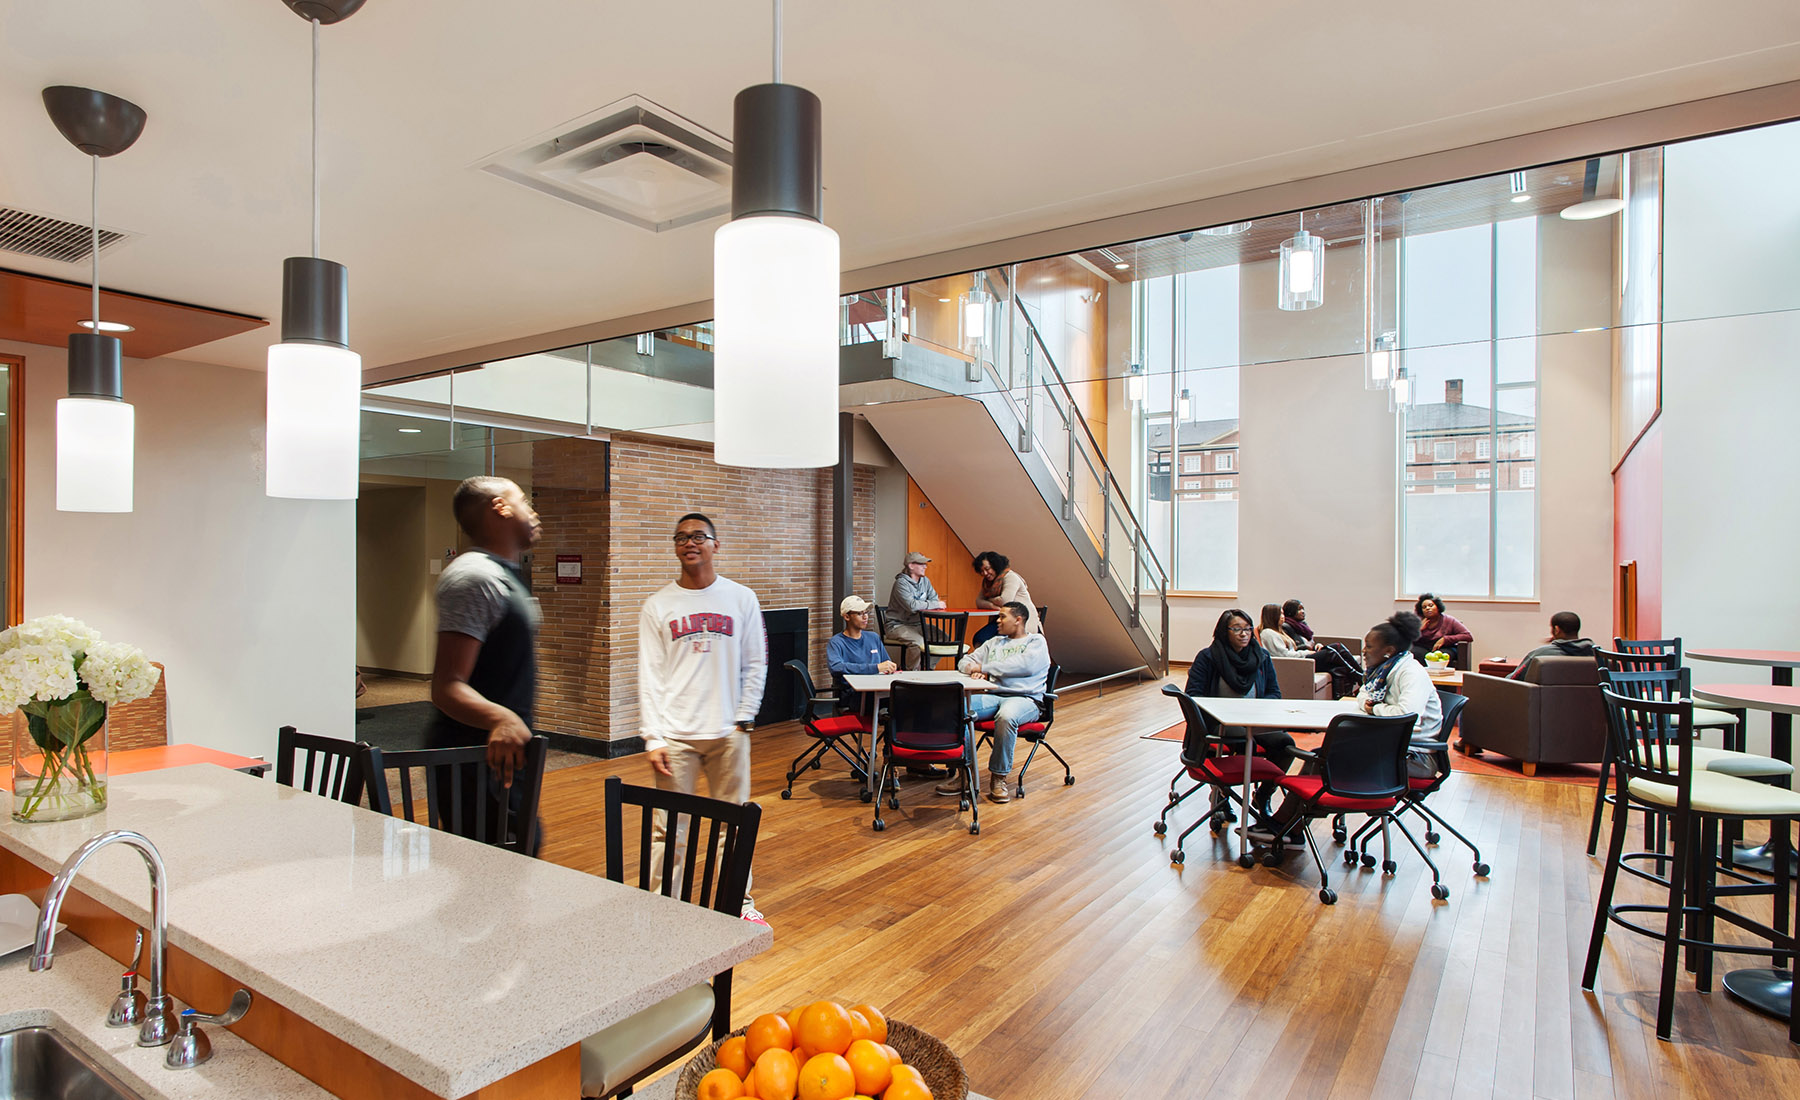 By removing an existing floor, VMDO designed a new two-story lounge space at the north end of each building. The new commons creates a remarkably open gathering space that is at once open and light-filled as well as private and removed.